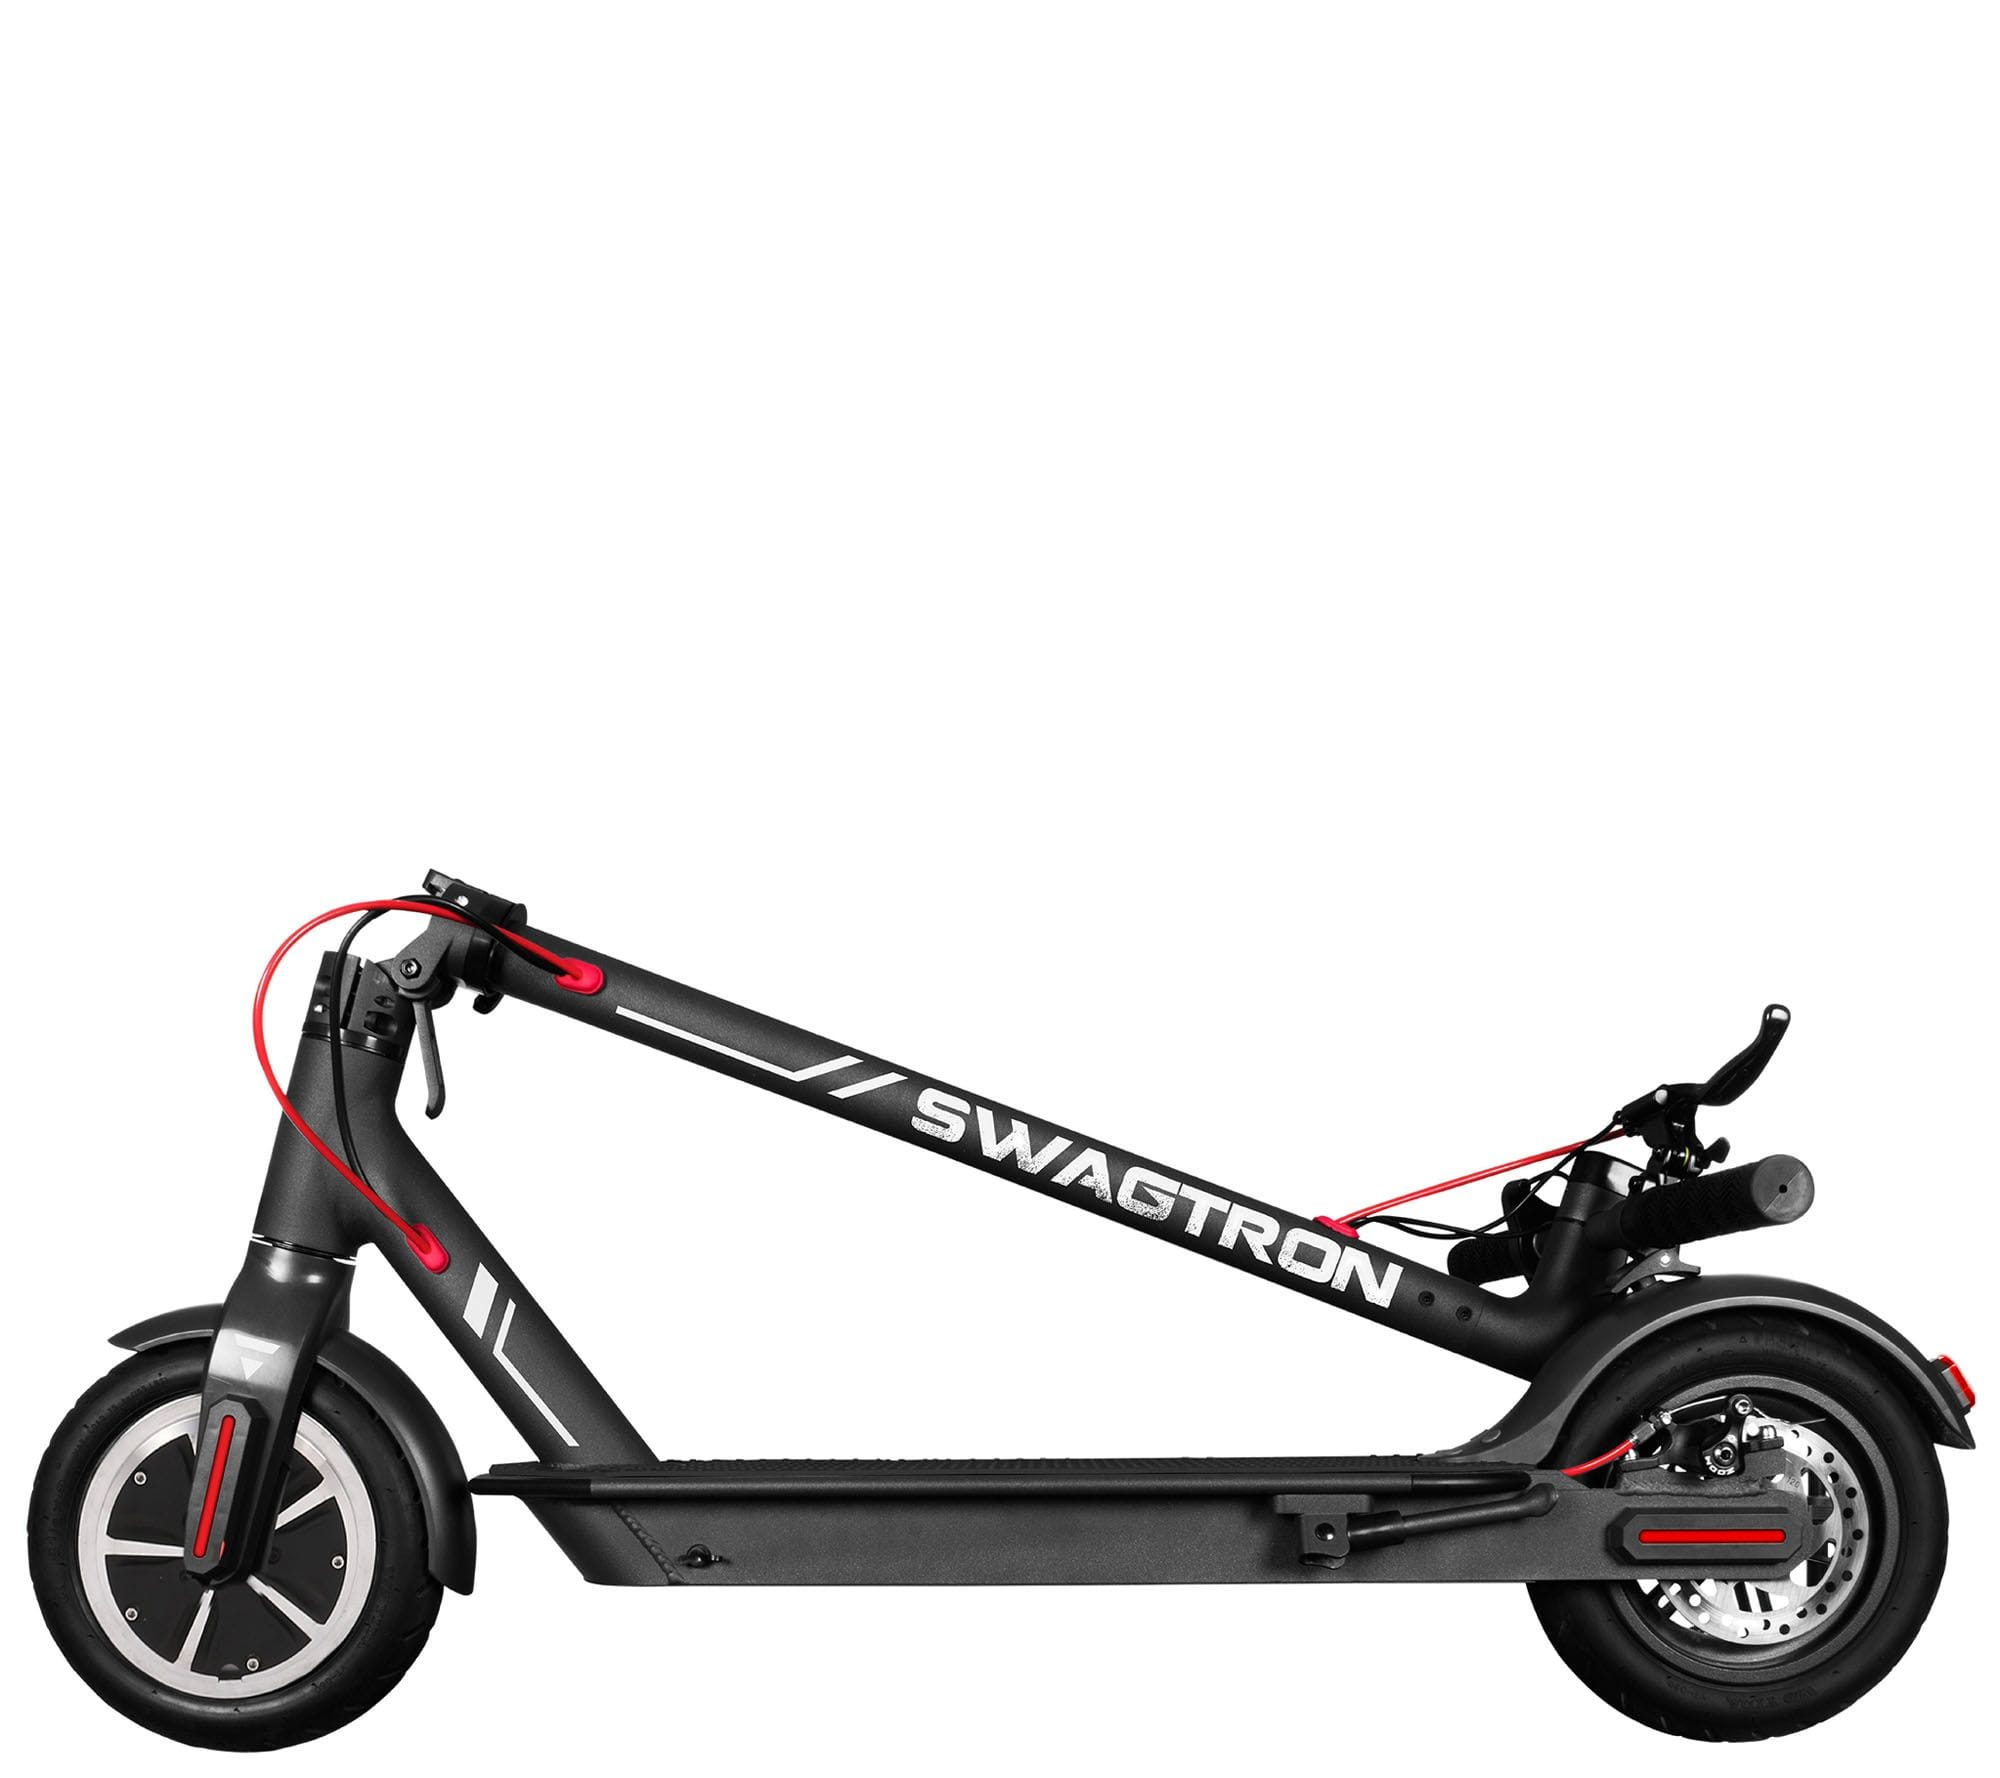 Swagtron Swagger 5 Electric Scooter Review 2019 - Electric